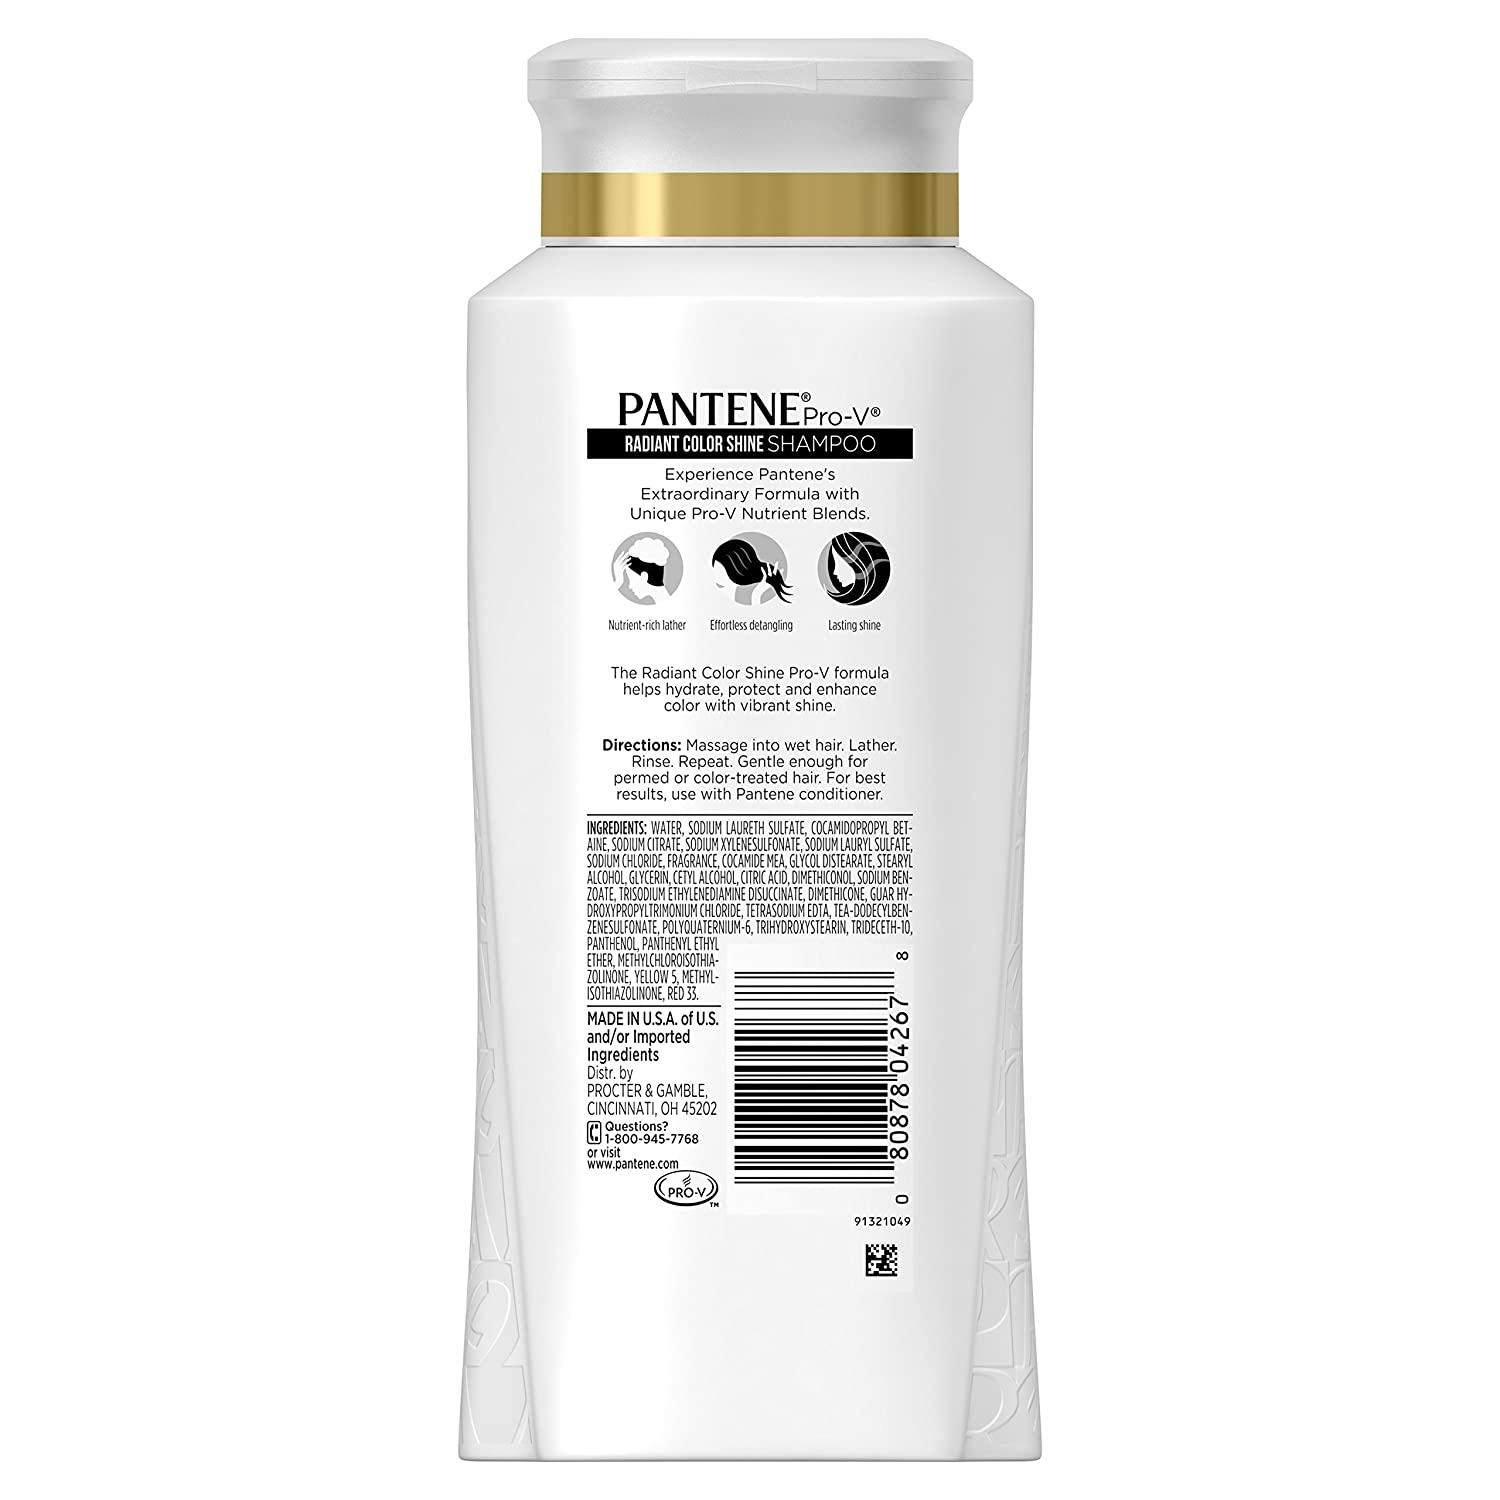 Pantene Pro-V Radiant Color Shine Shampoo 25.4 Fl Oz